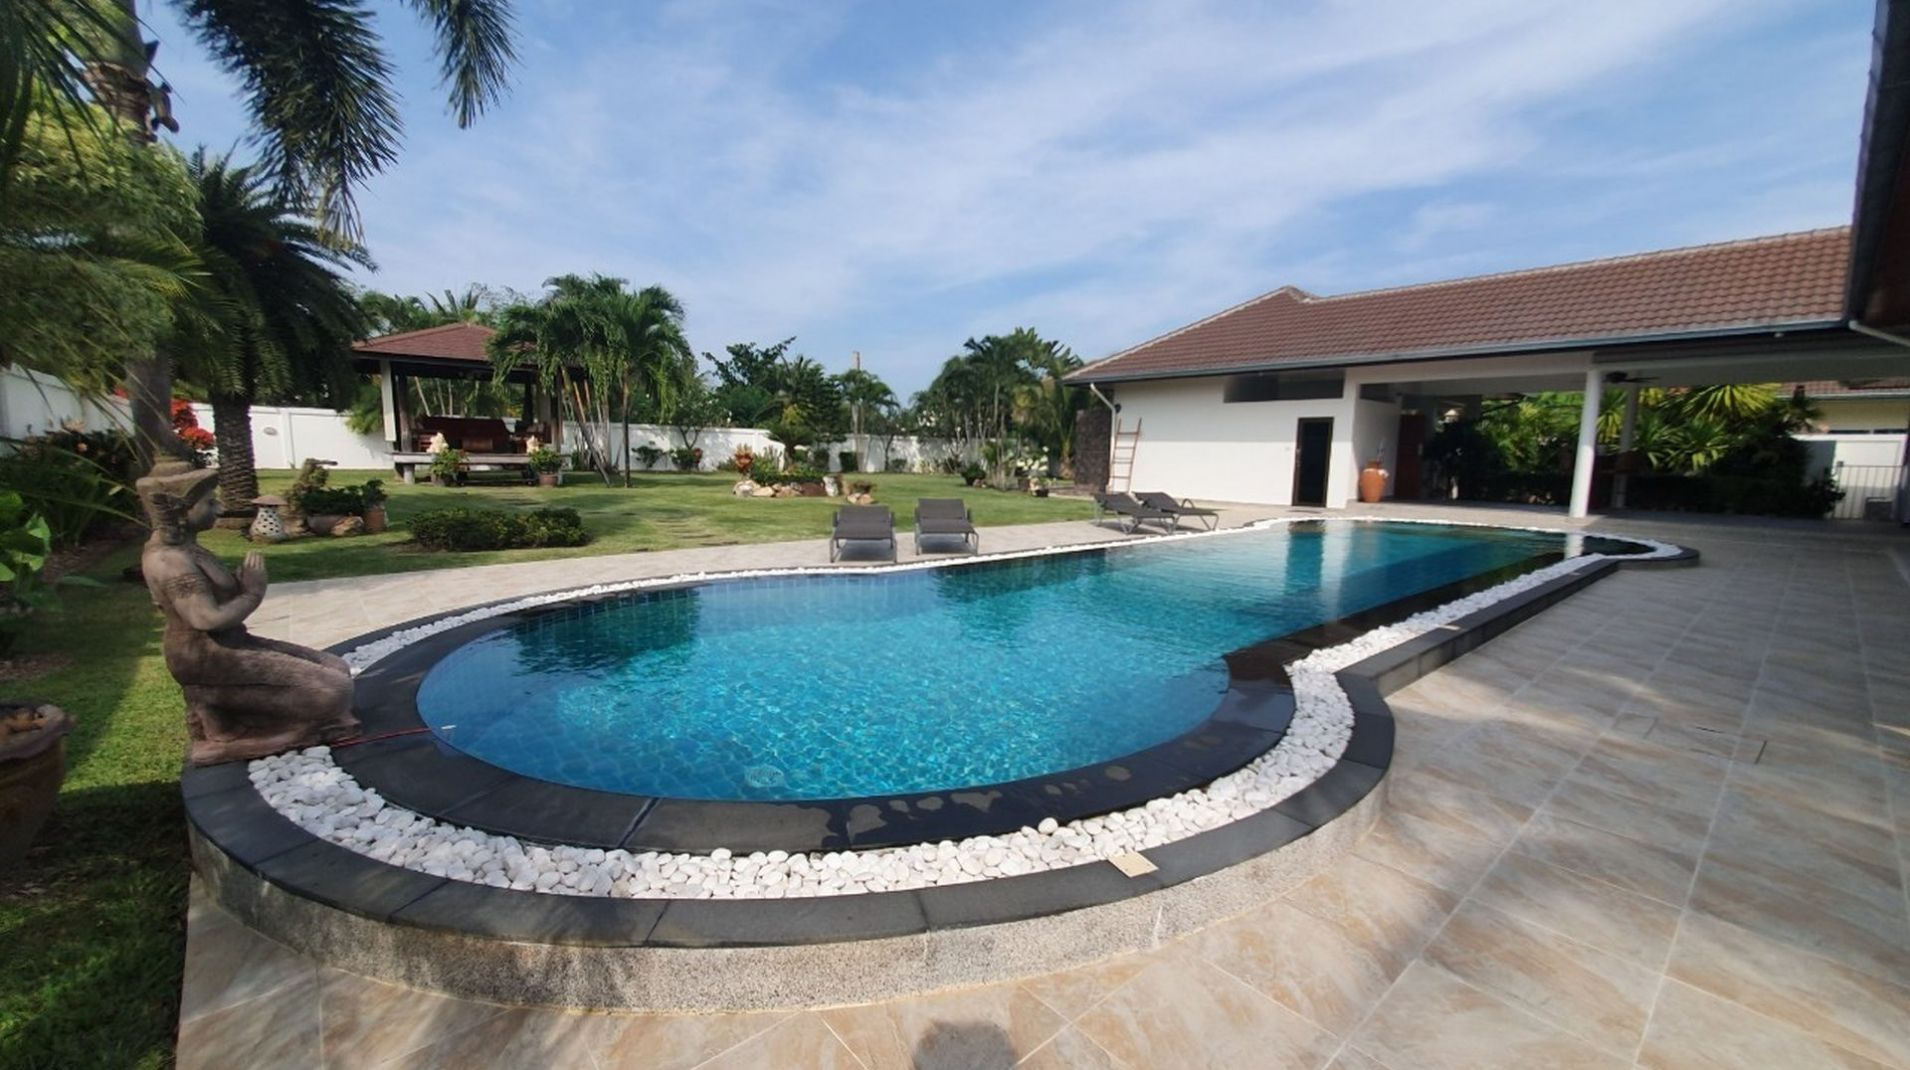 homes-for-sale-in-hua-hin-thailand-1506678534